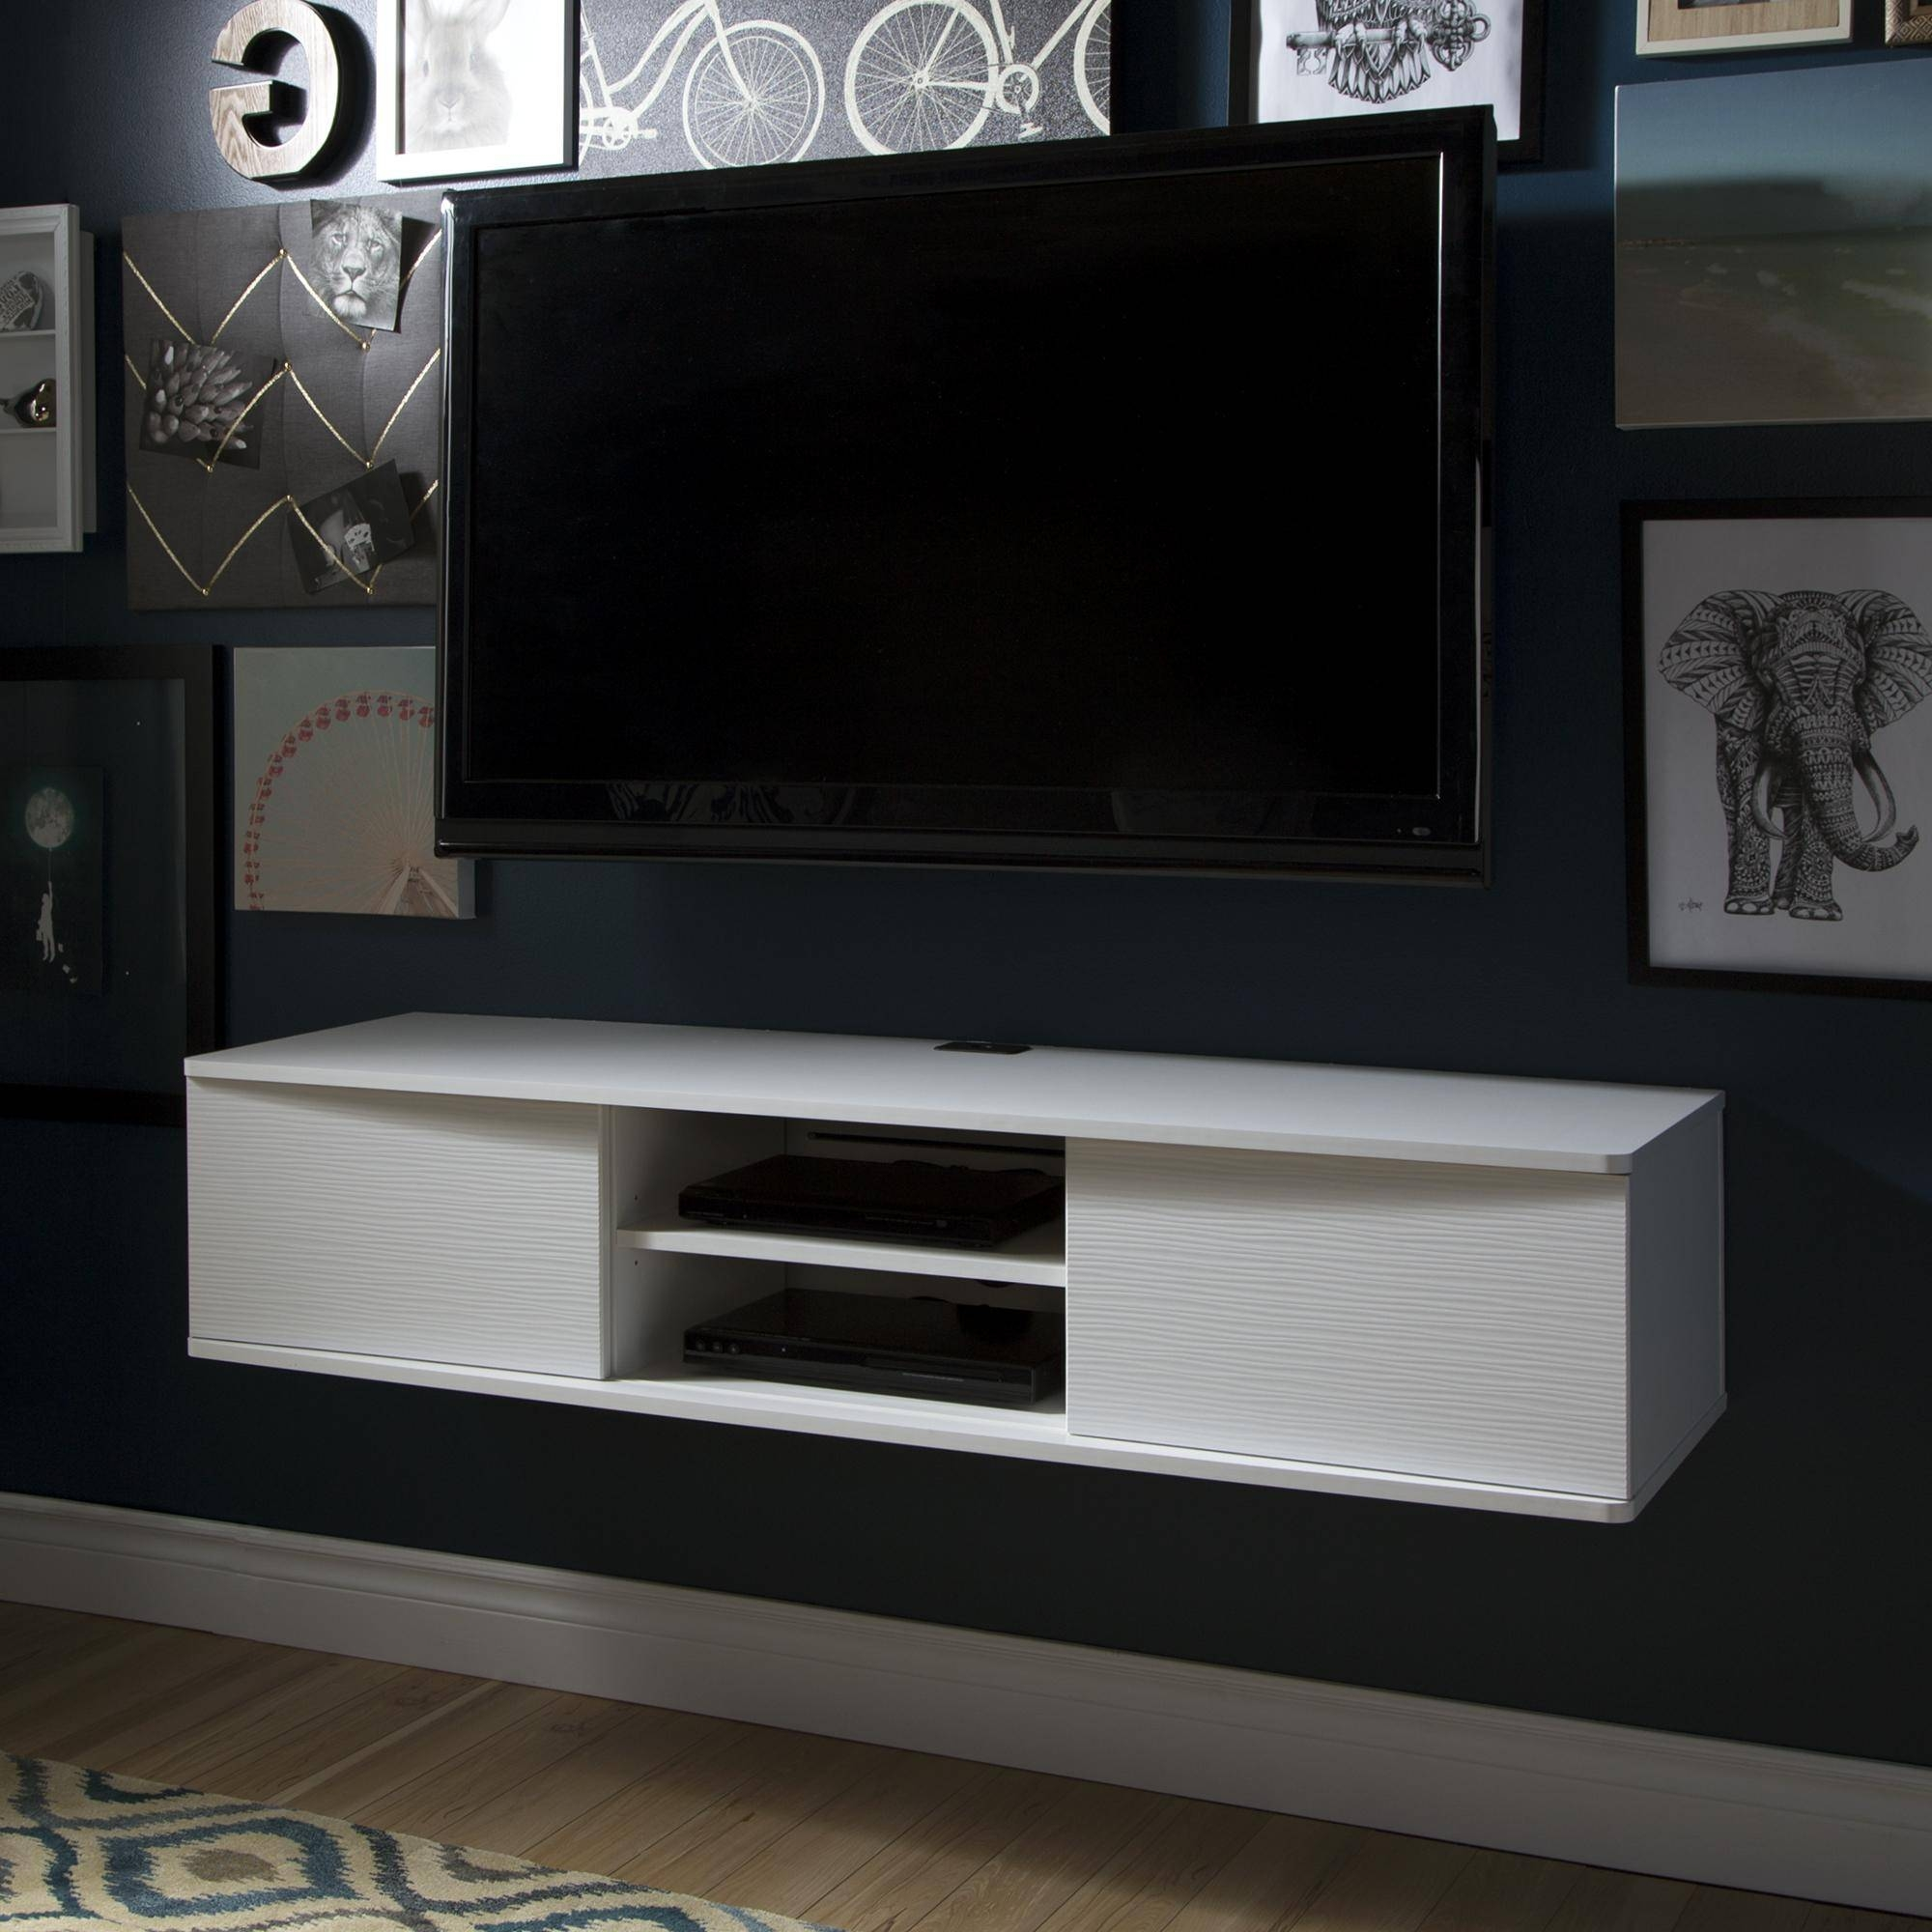 Wall Mounted Tv Console Ideas 15 Best White Wall Mounted Tv Stands